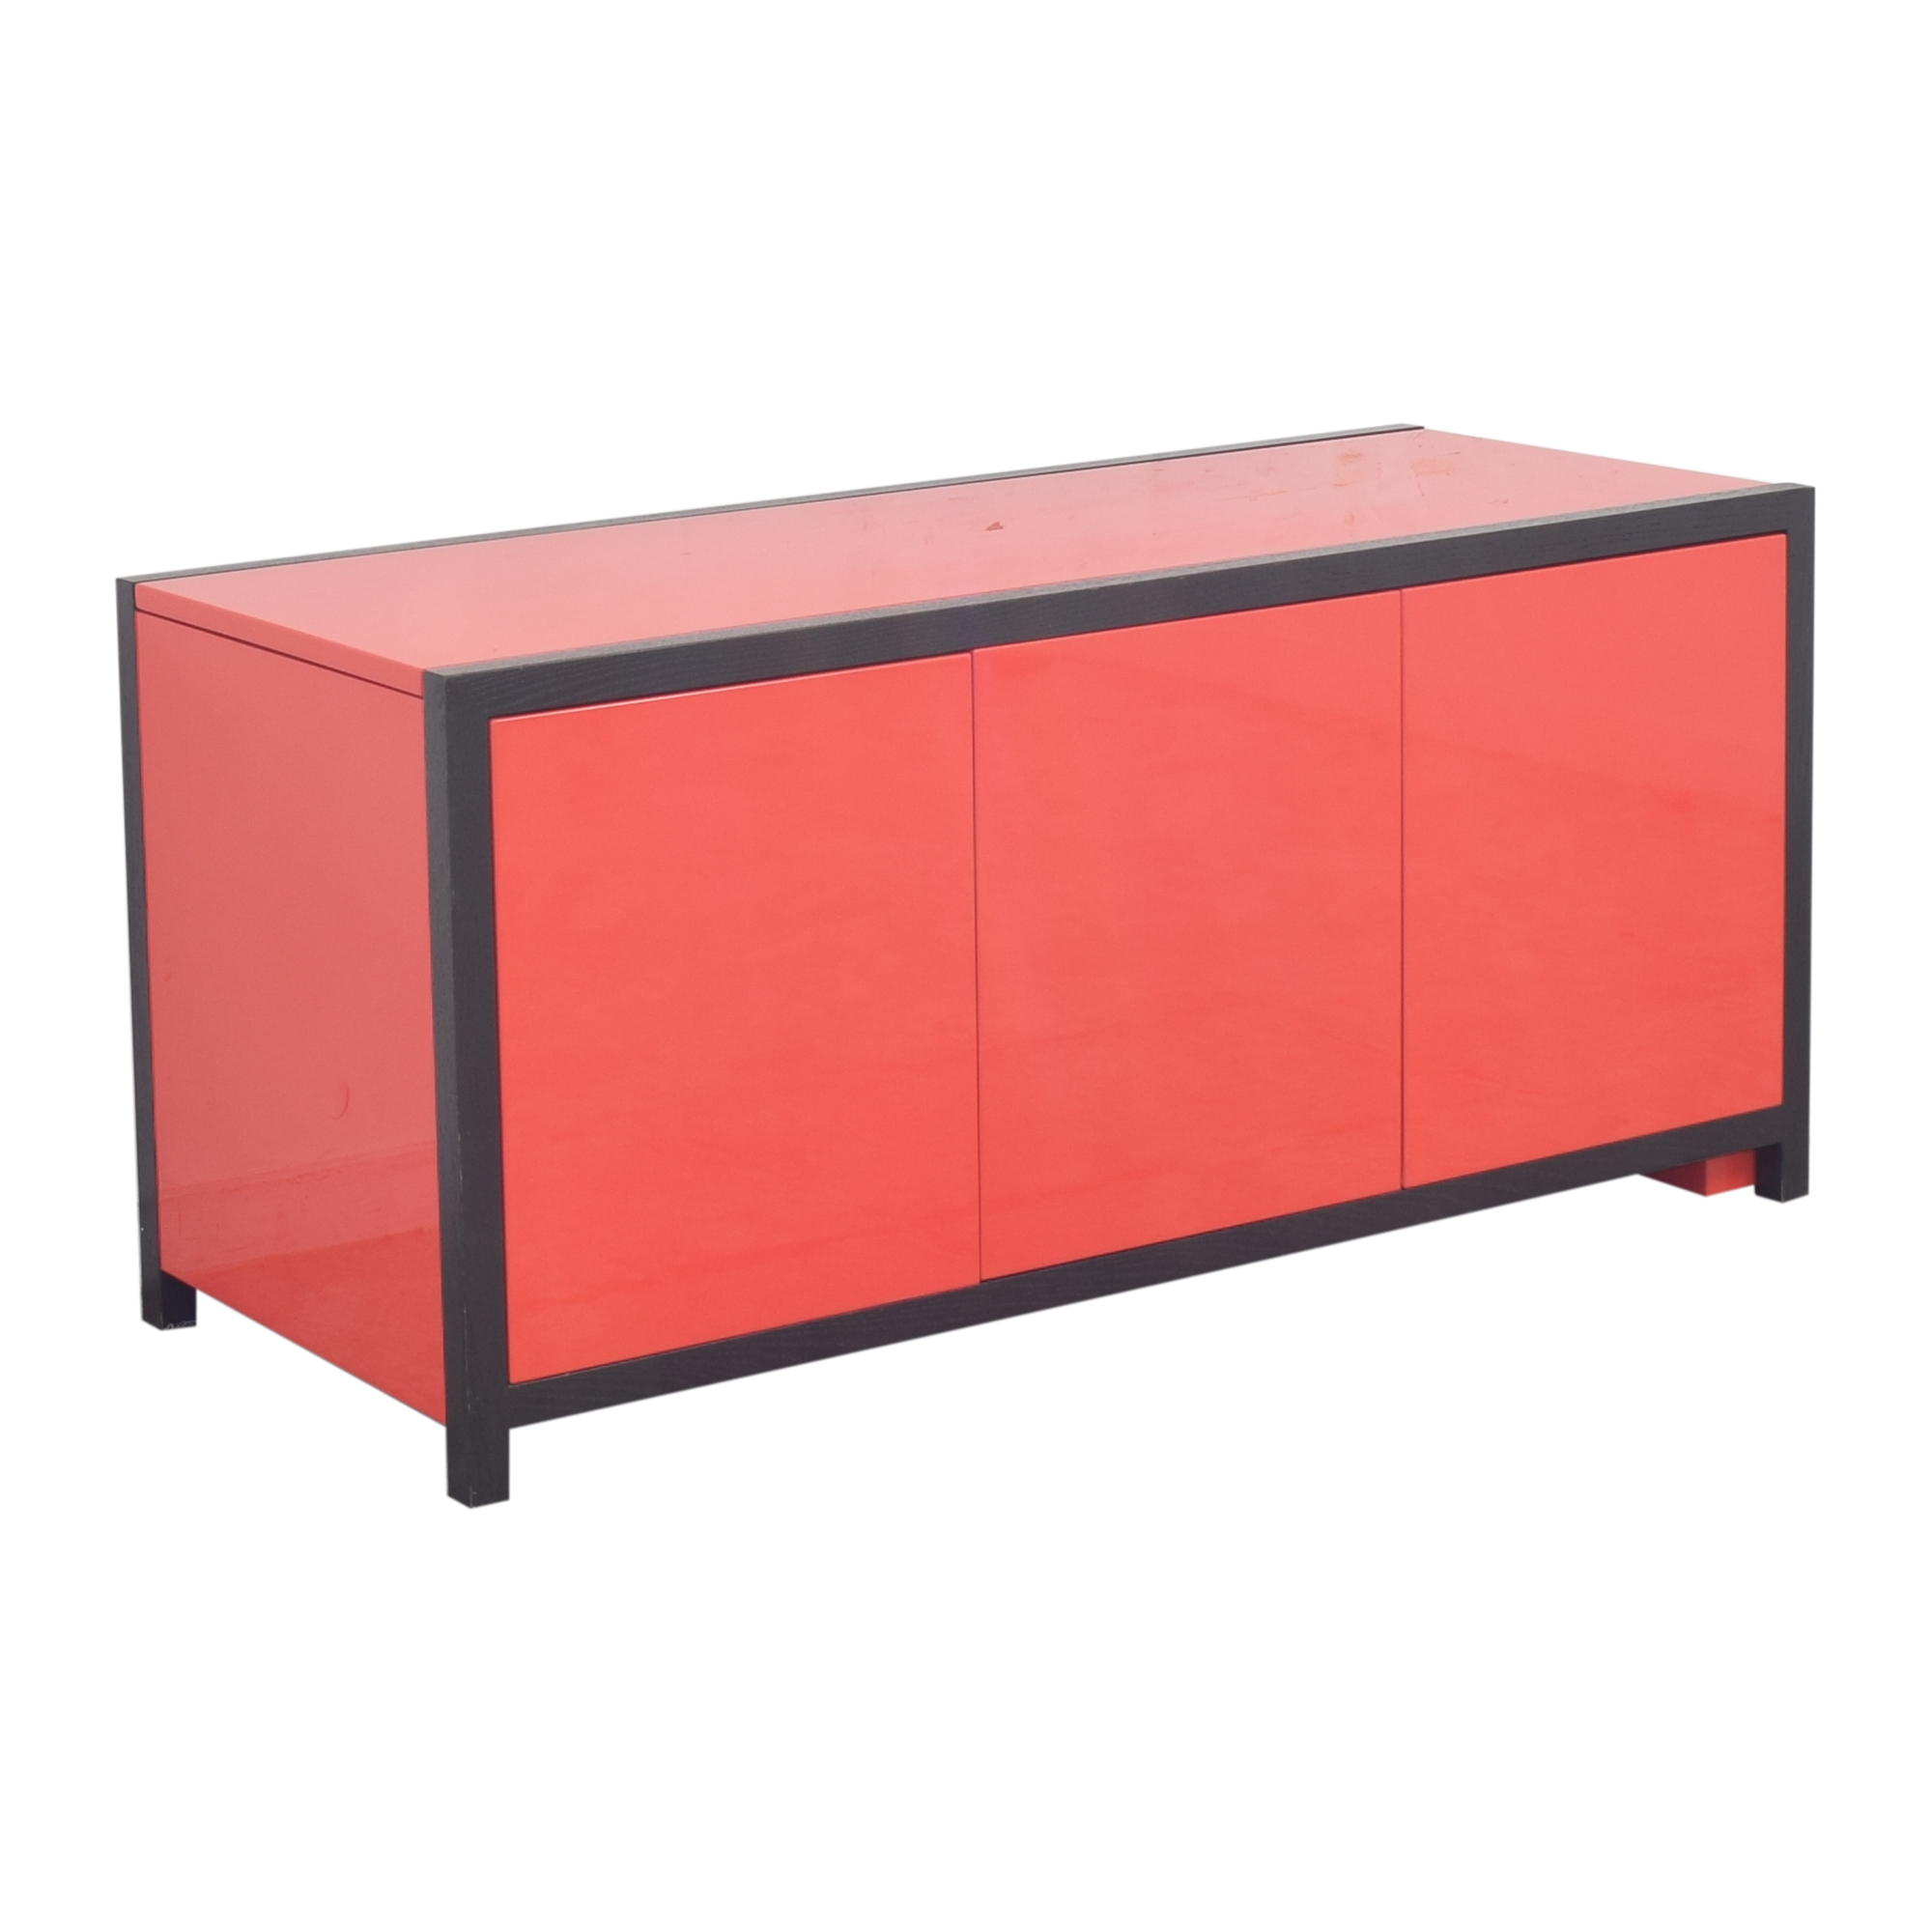 Dune Dune Lemans Sideboard with Extendable Desk ct